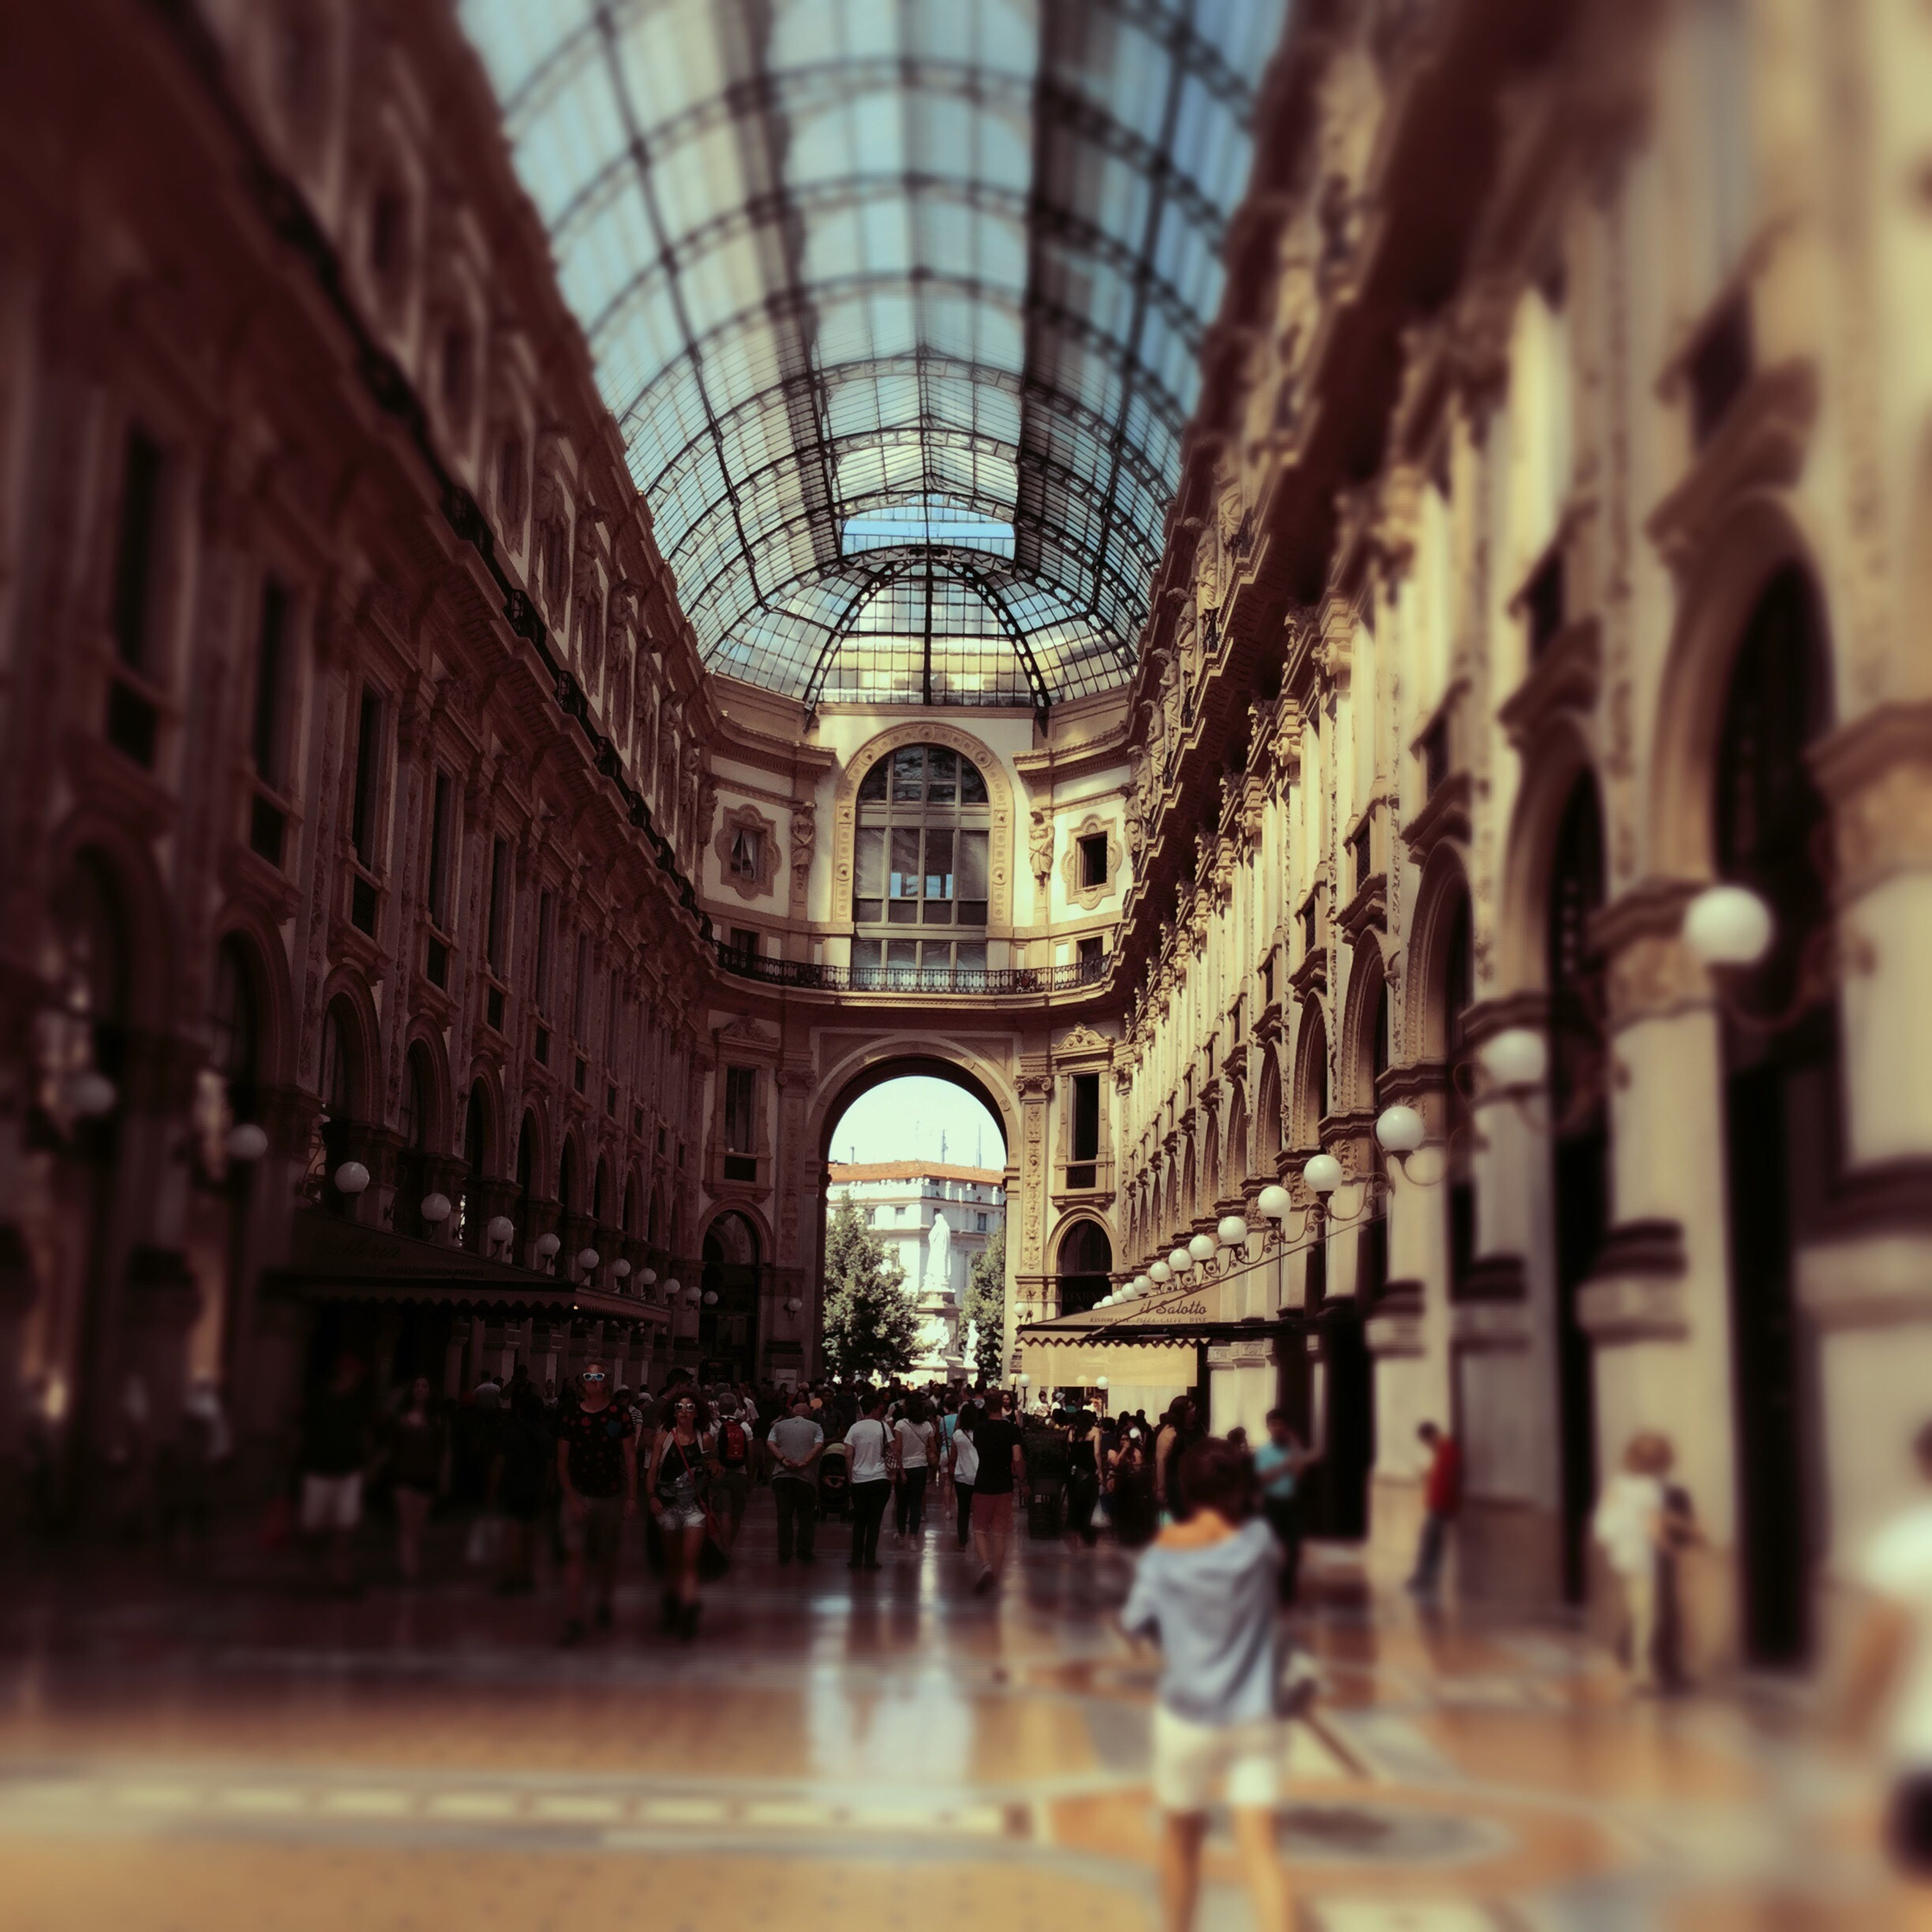 architecture, arch, built structure, walking, travel destinations, selective focus, city, building exterior, shopping mall, culture, day, city life, tourism, history, famous place, arcade